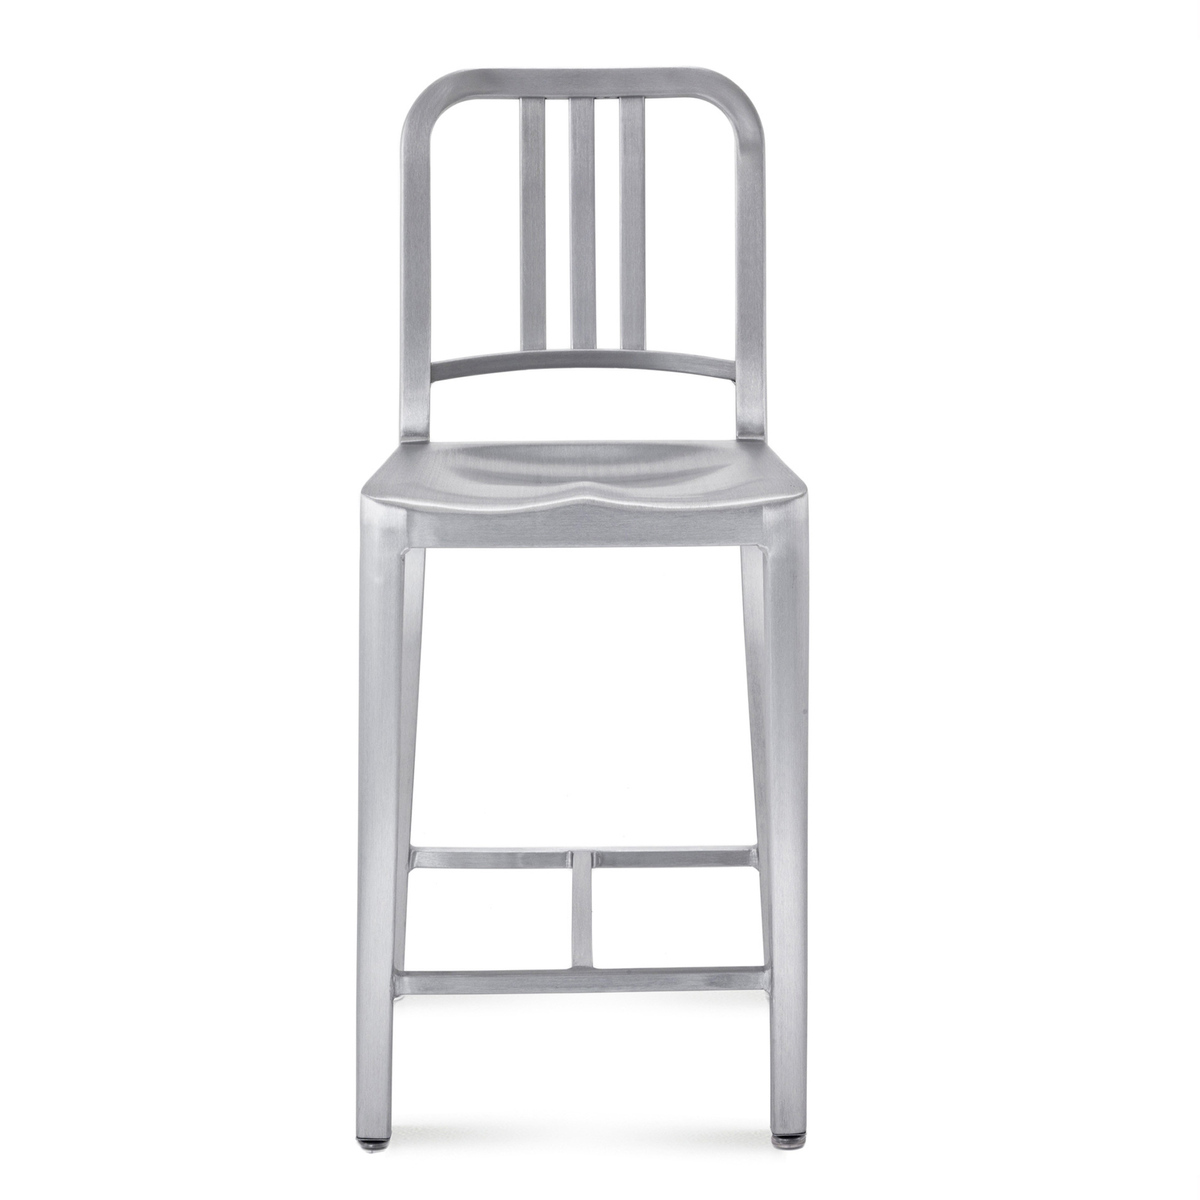 NAVY® COUNTER STOOL